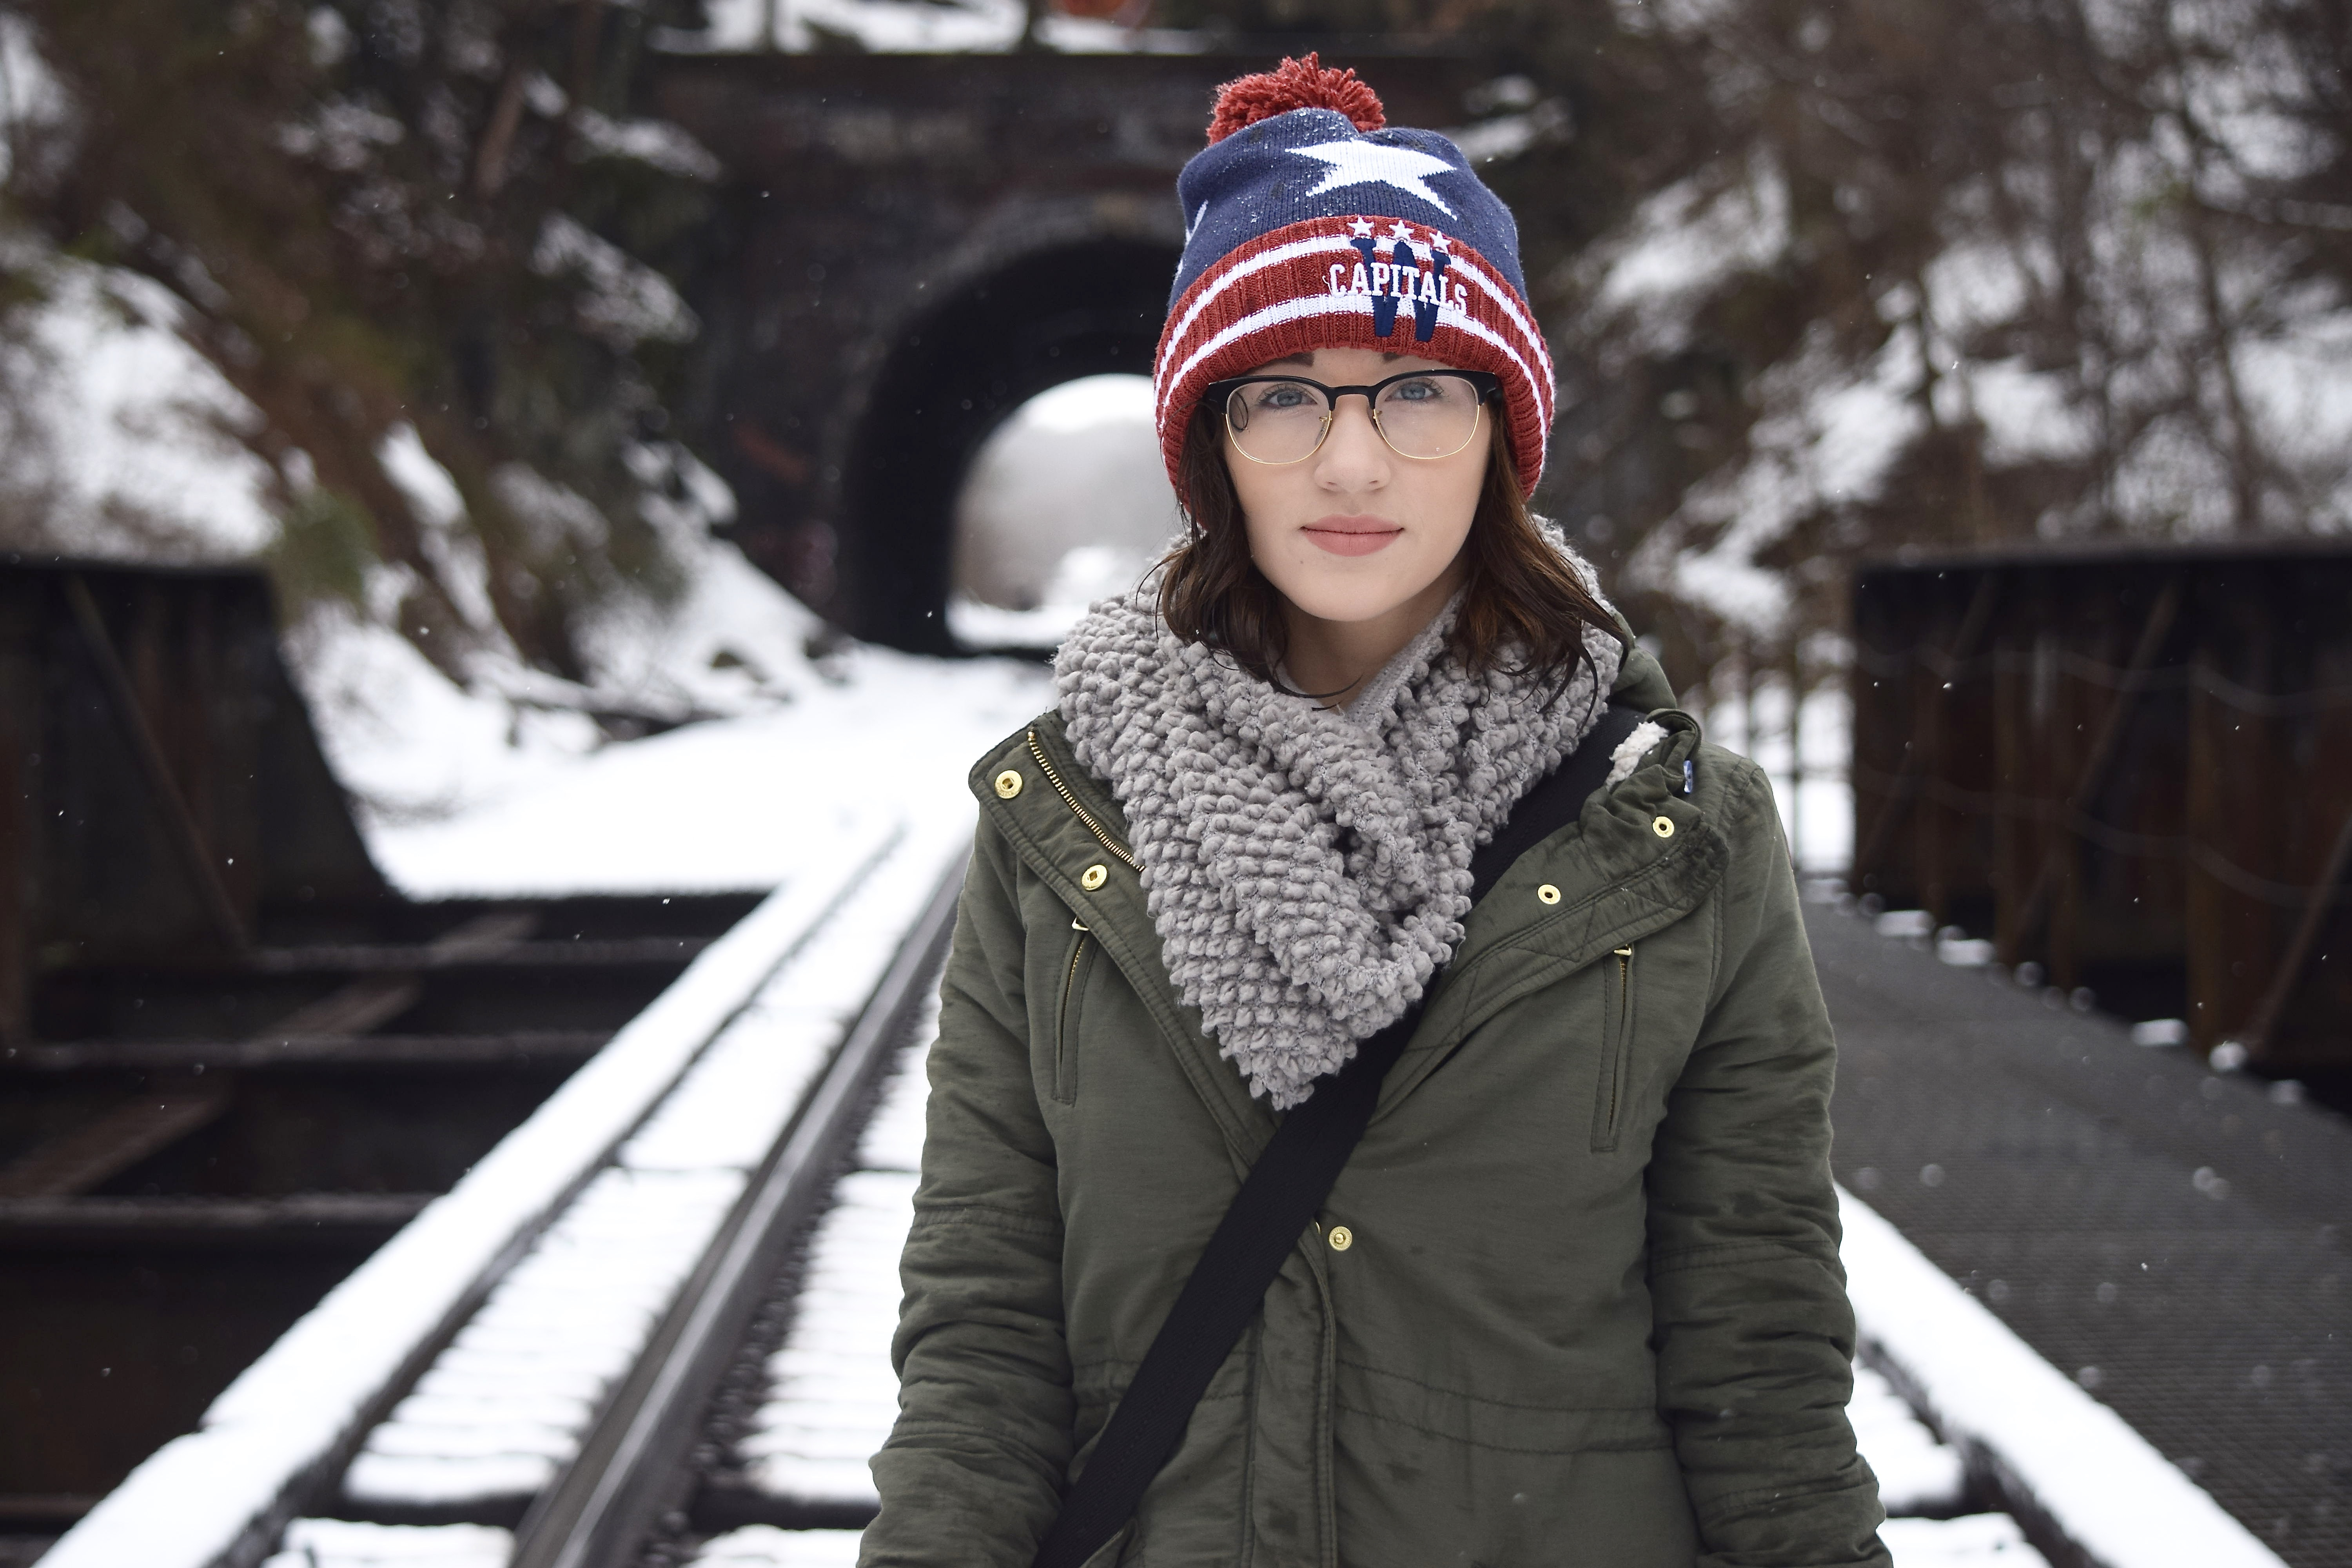 A girl with is walking on a snowy train track in front of a tunnel